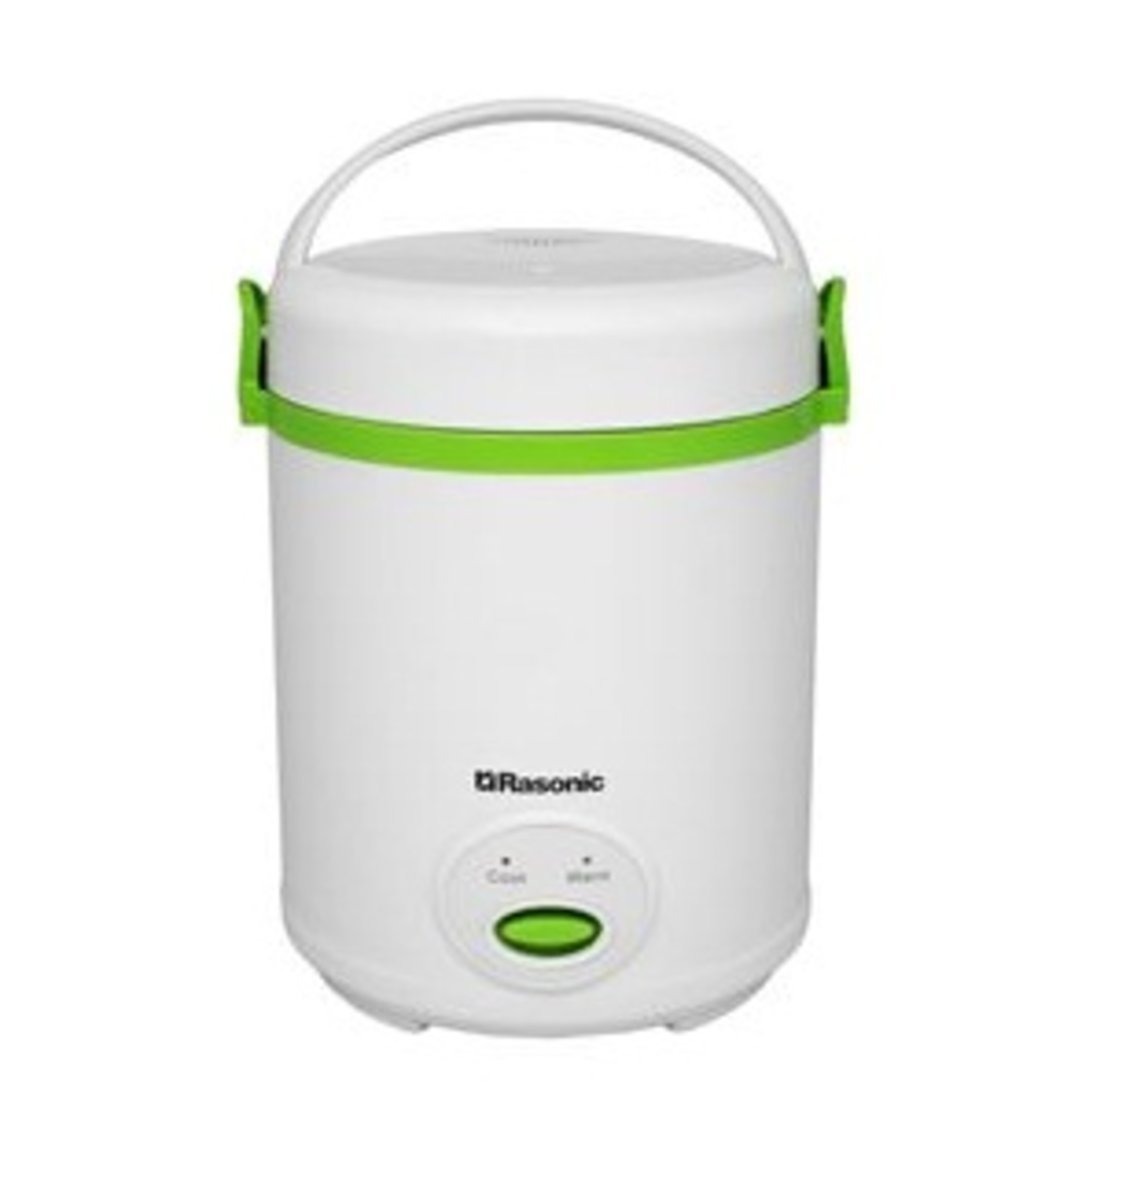 RRC-Y5H Mini Rice Cooker